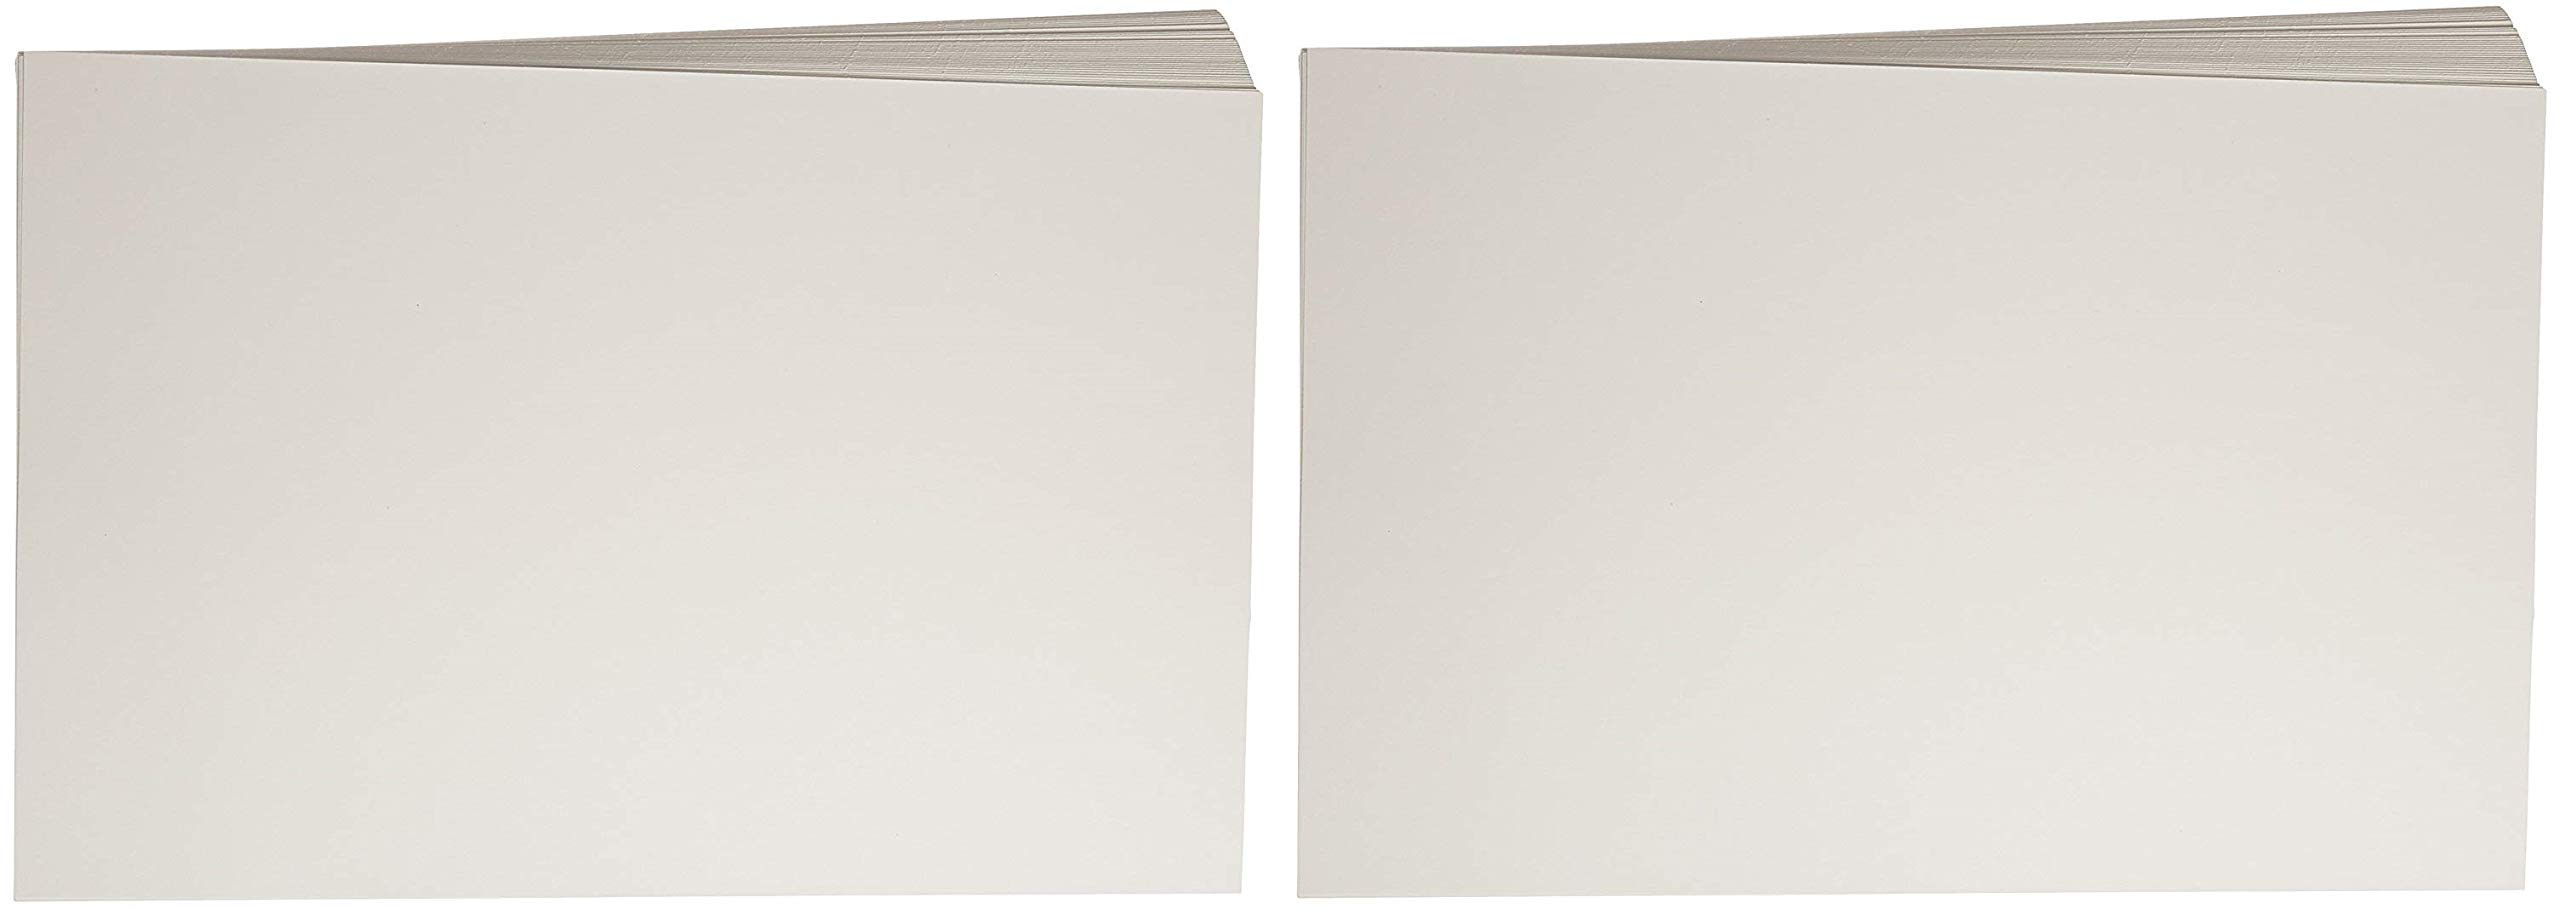 Sax Beginner Watercolor Paper, 12 x 18 Inches, 90 lb, Natural White, 100 Sheets (2 X 100 Sheets)